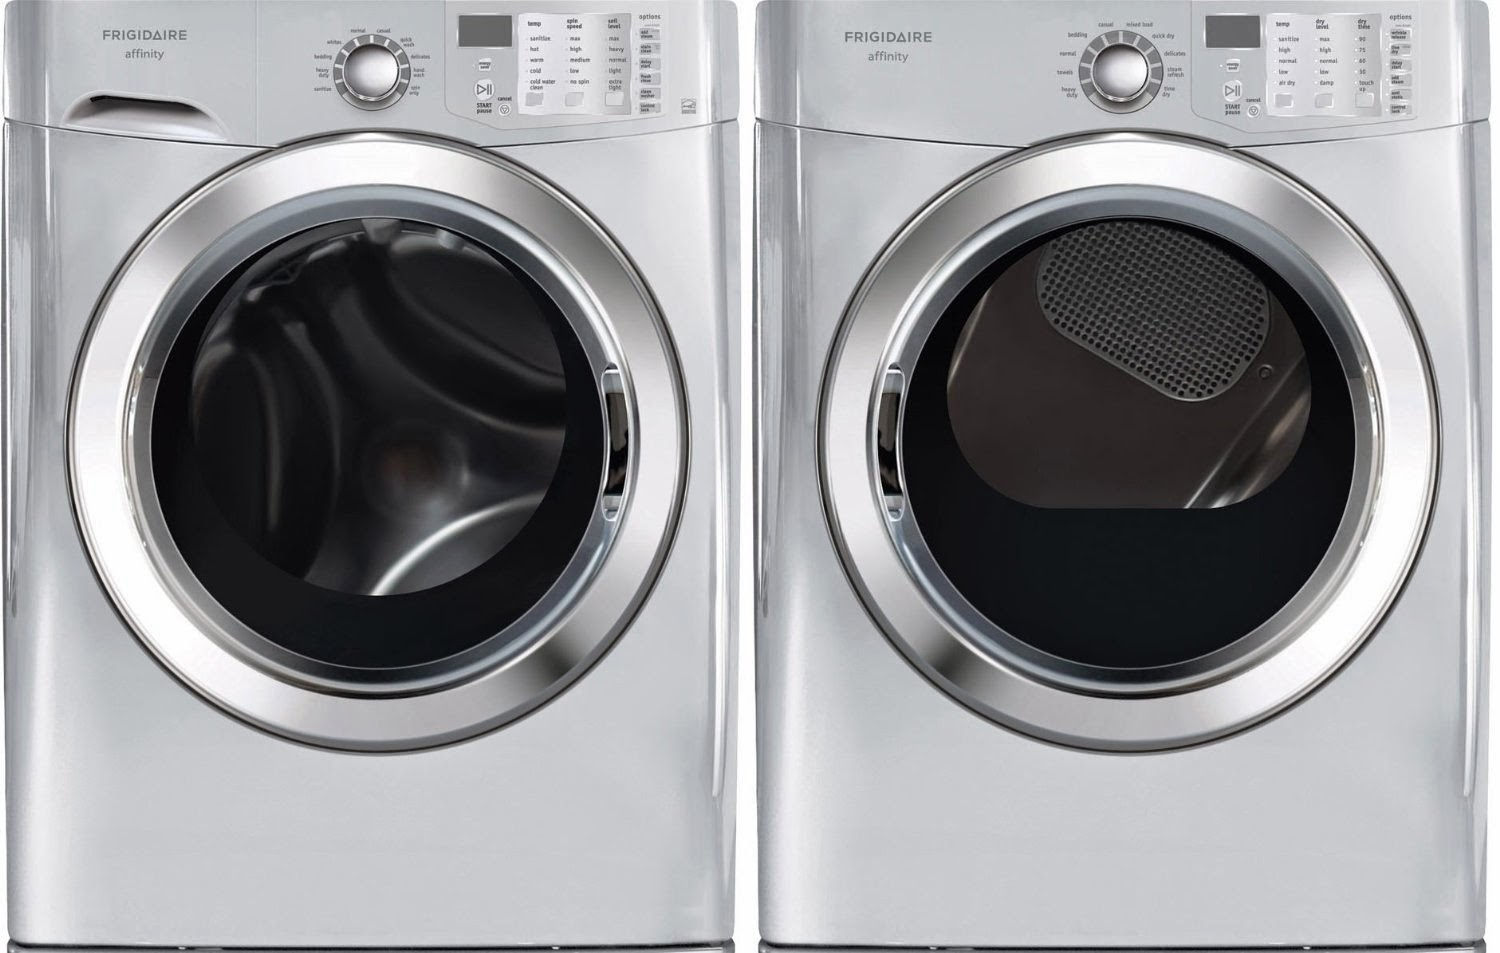 Washer Reviews Frigidaire Affinity Washer Reviews